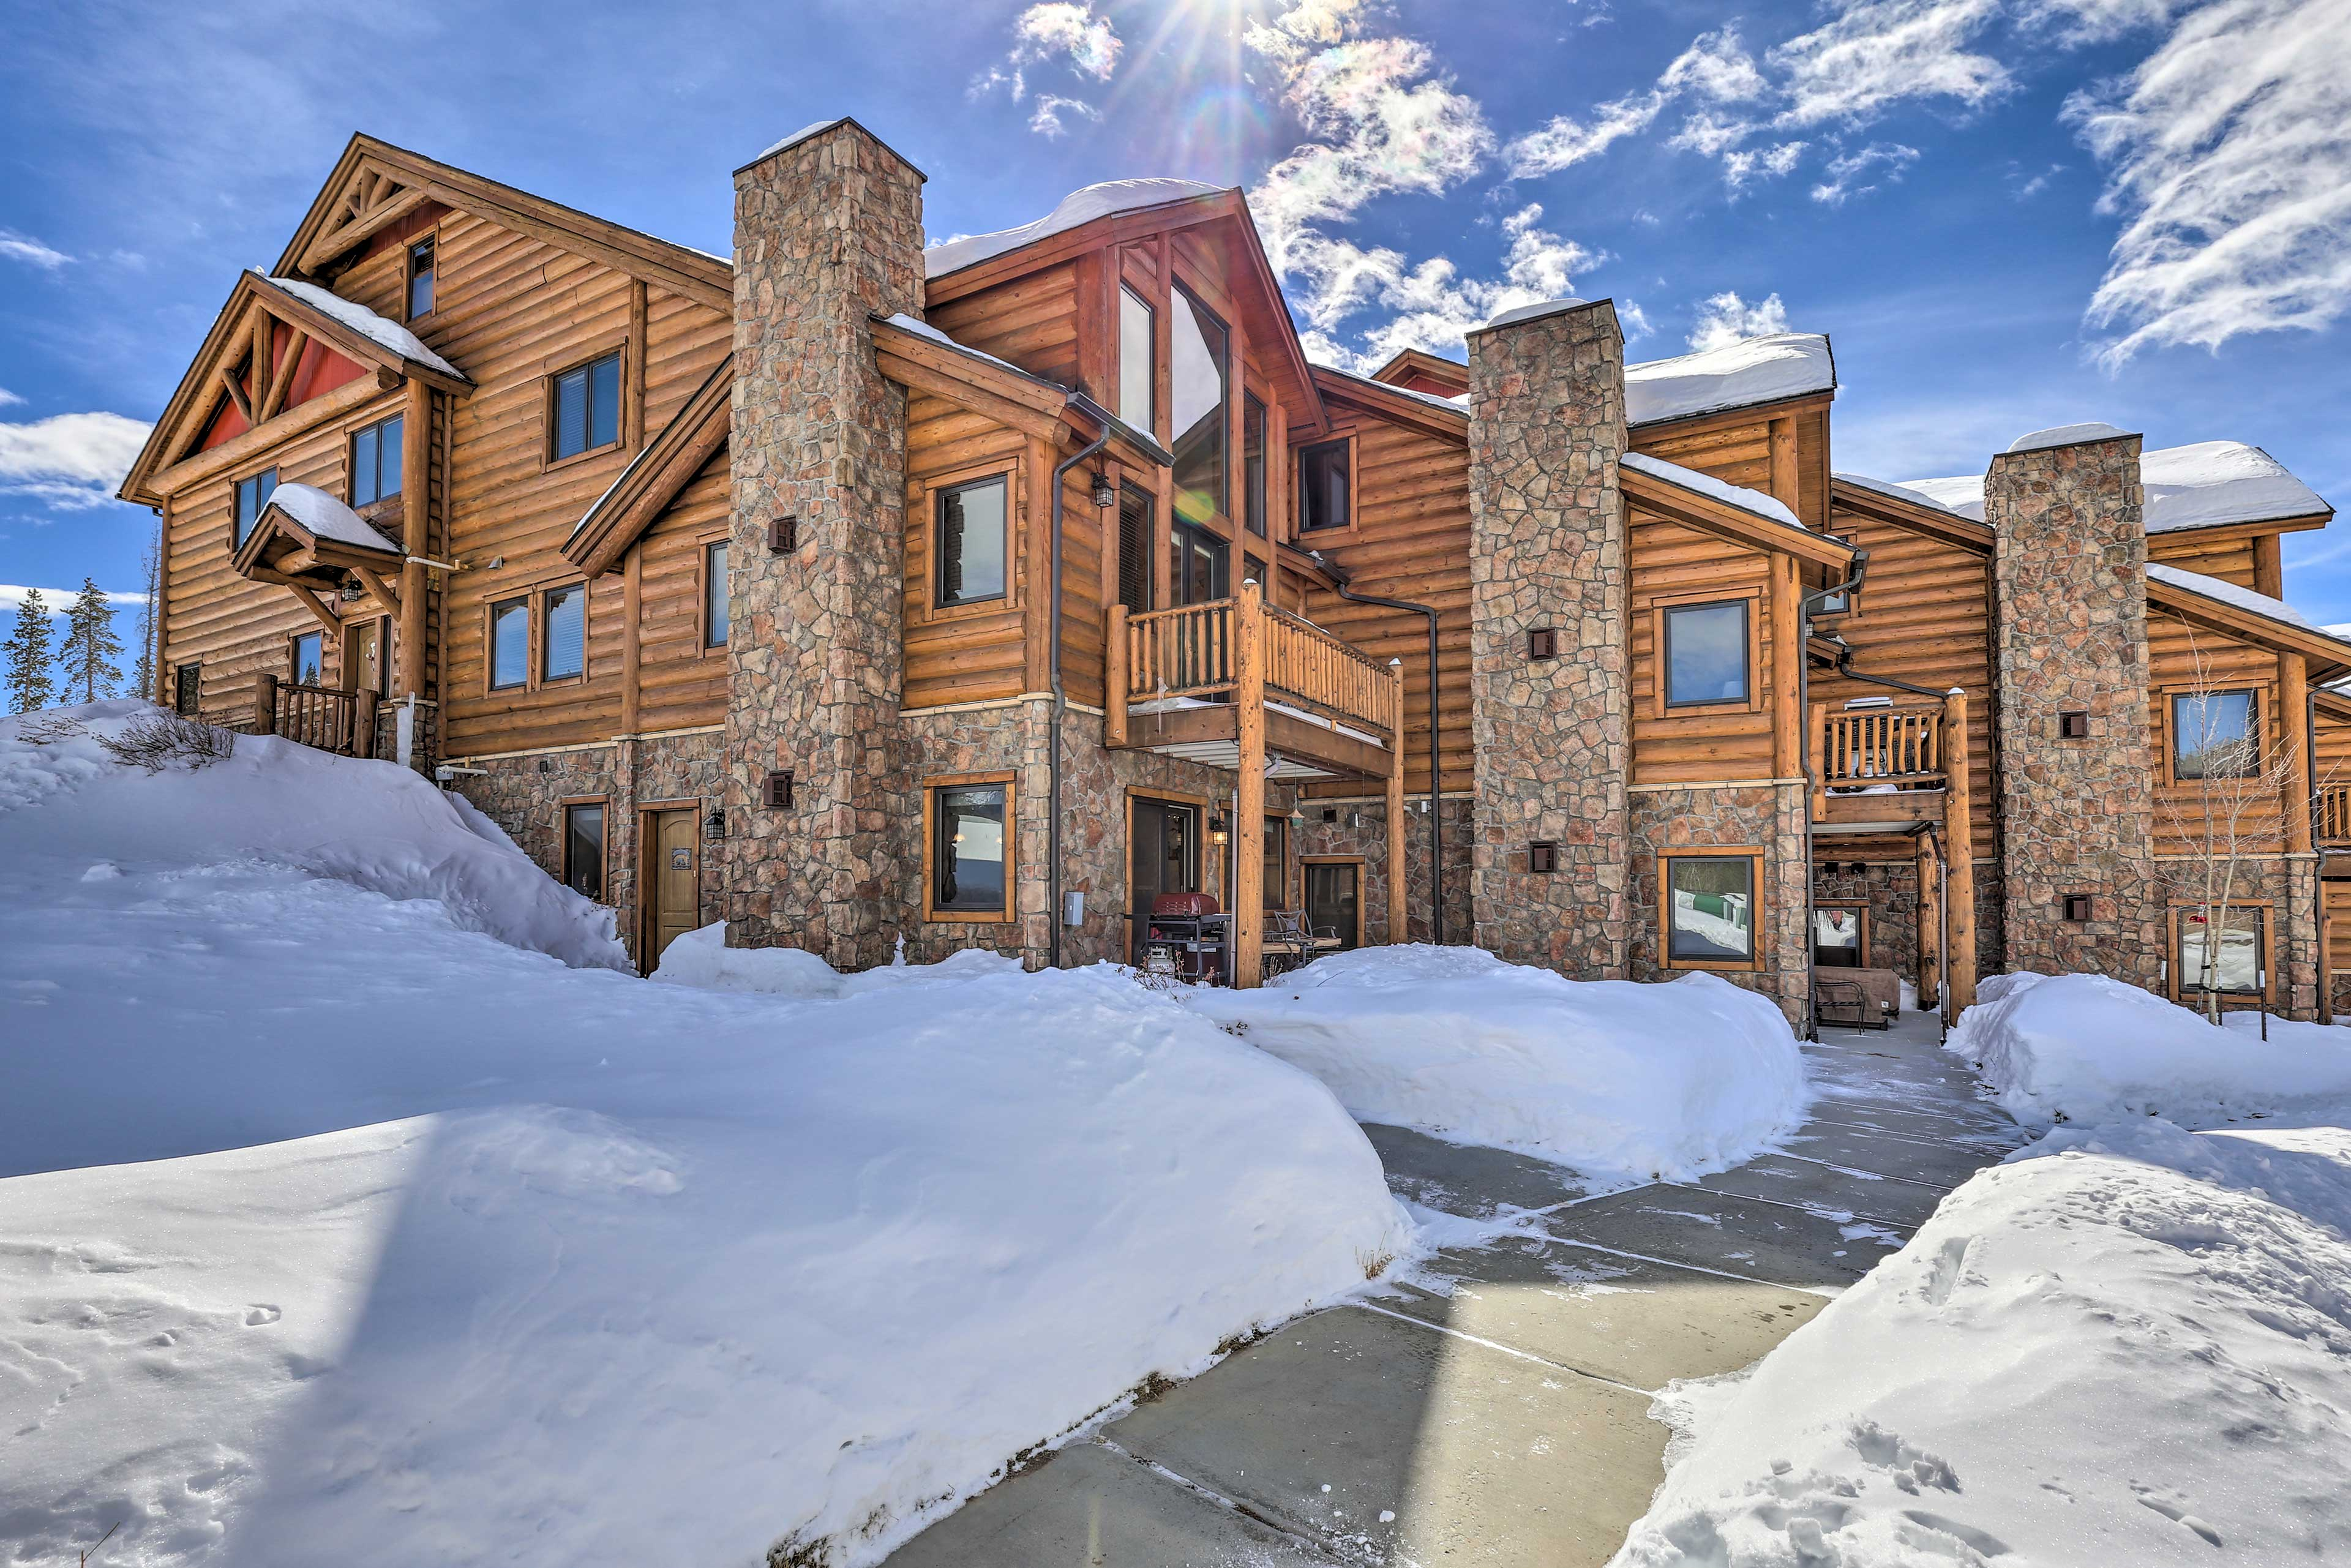 This property transforms into a winter wonderland!